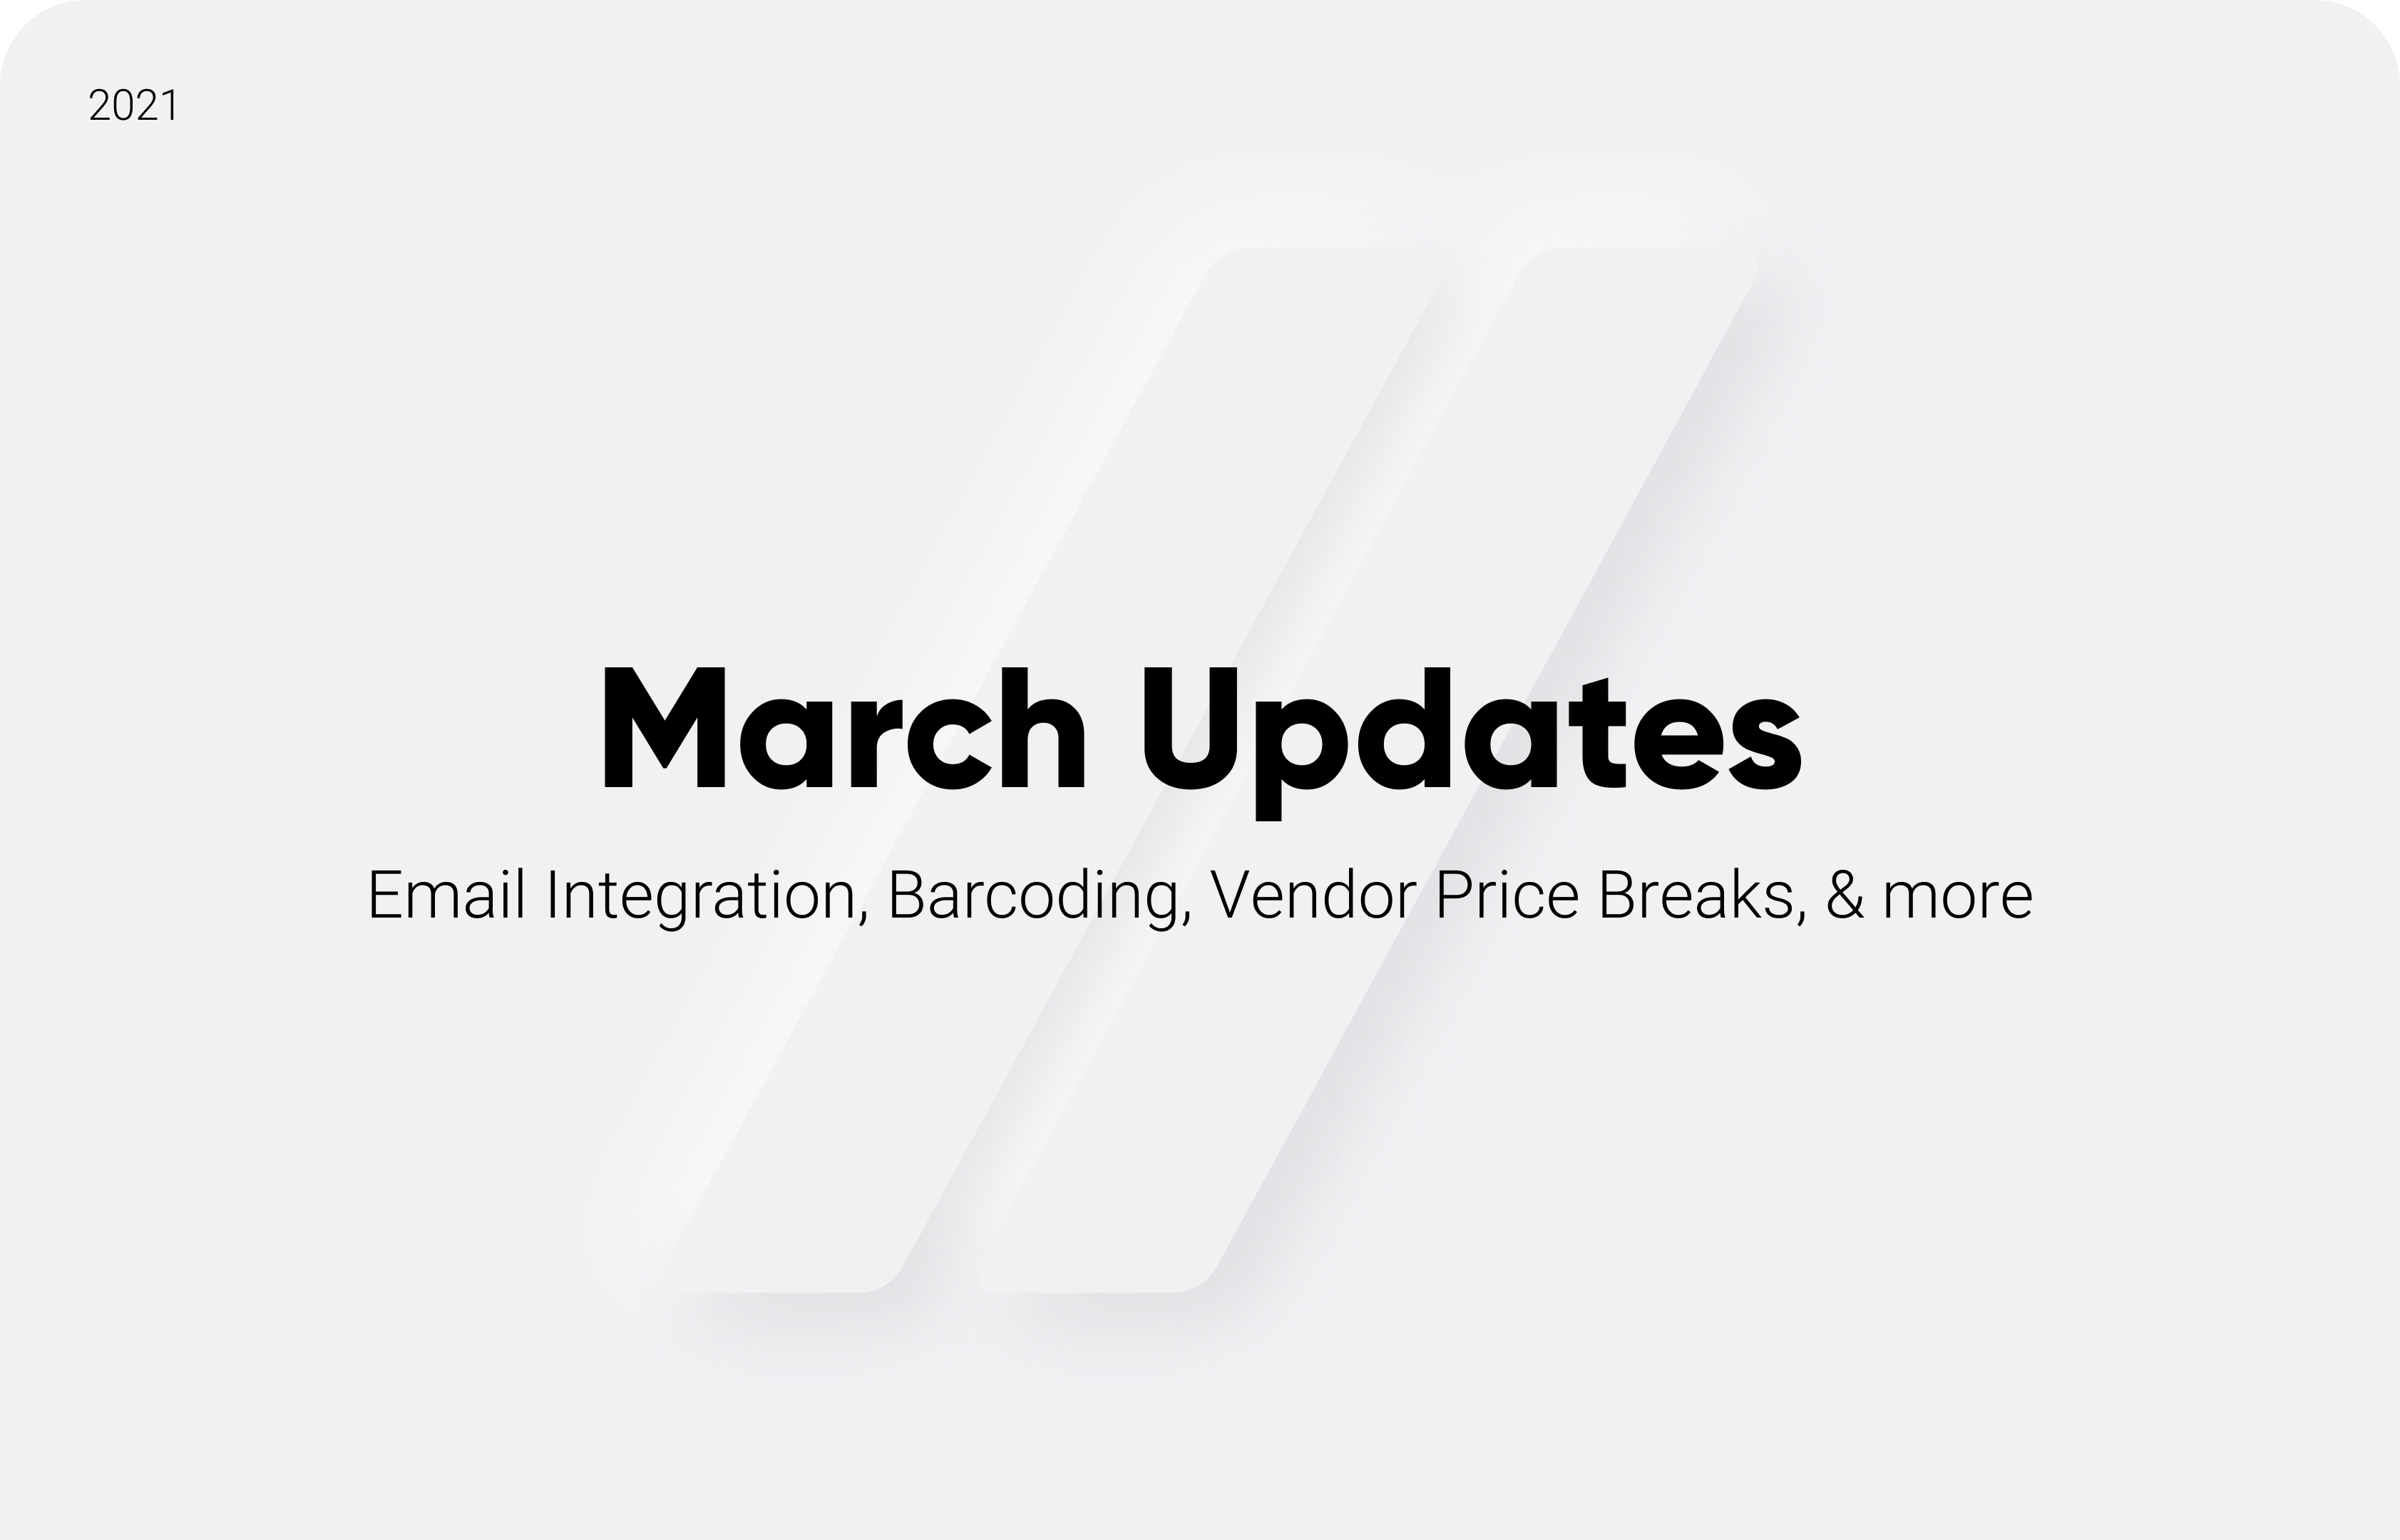 March Updates: Email Integration, Barcoding, Vendor Price Breaks, & more